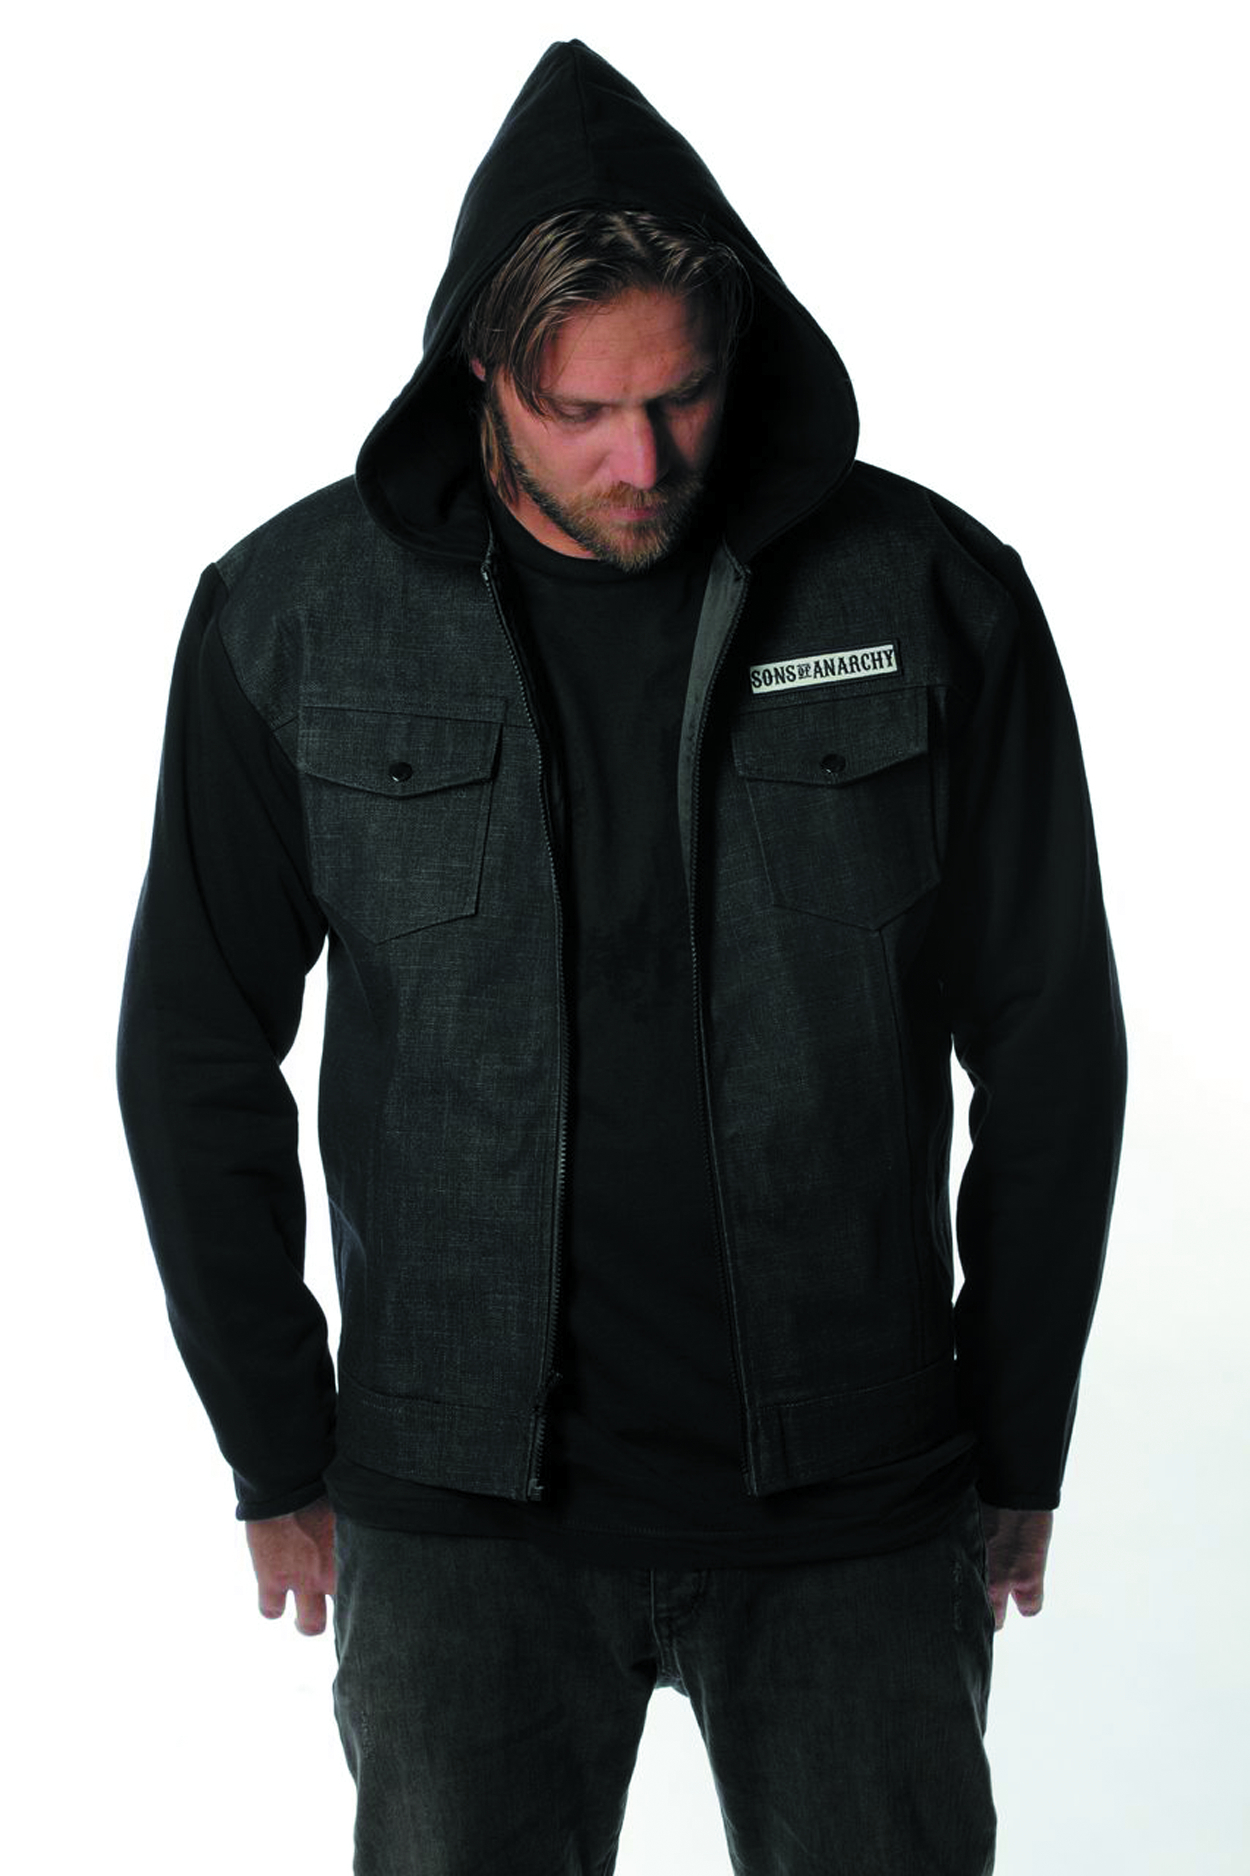 SONS OF ANARCHY HIGHWAY JACKET LG